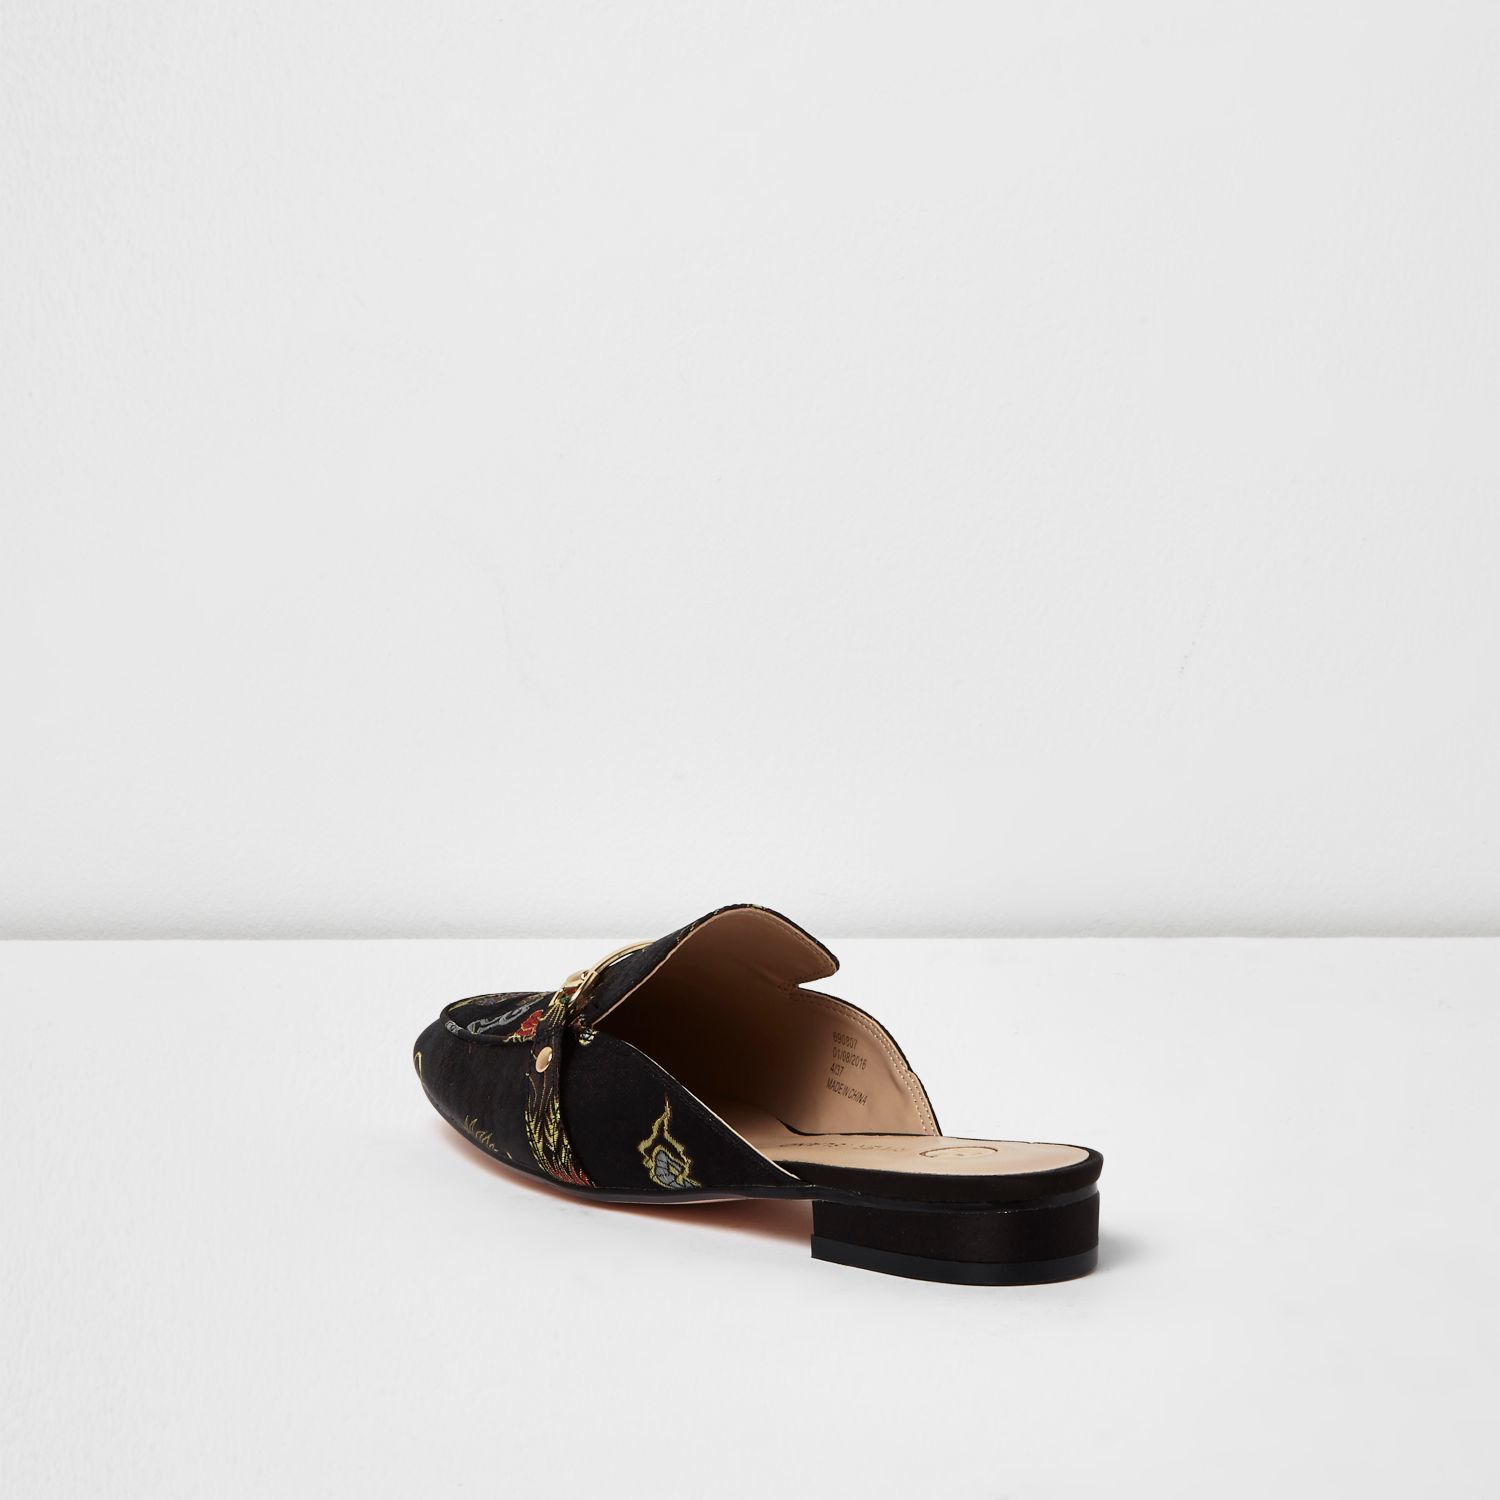 River Island Backless Loafers